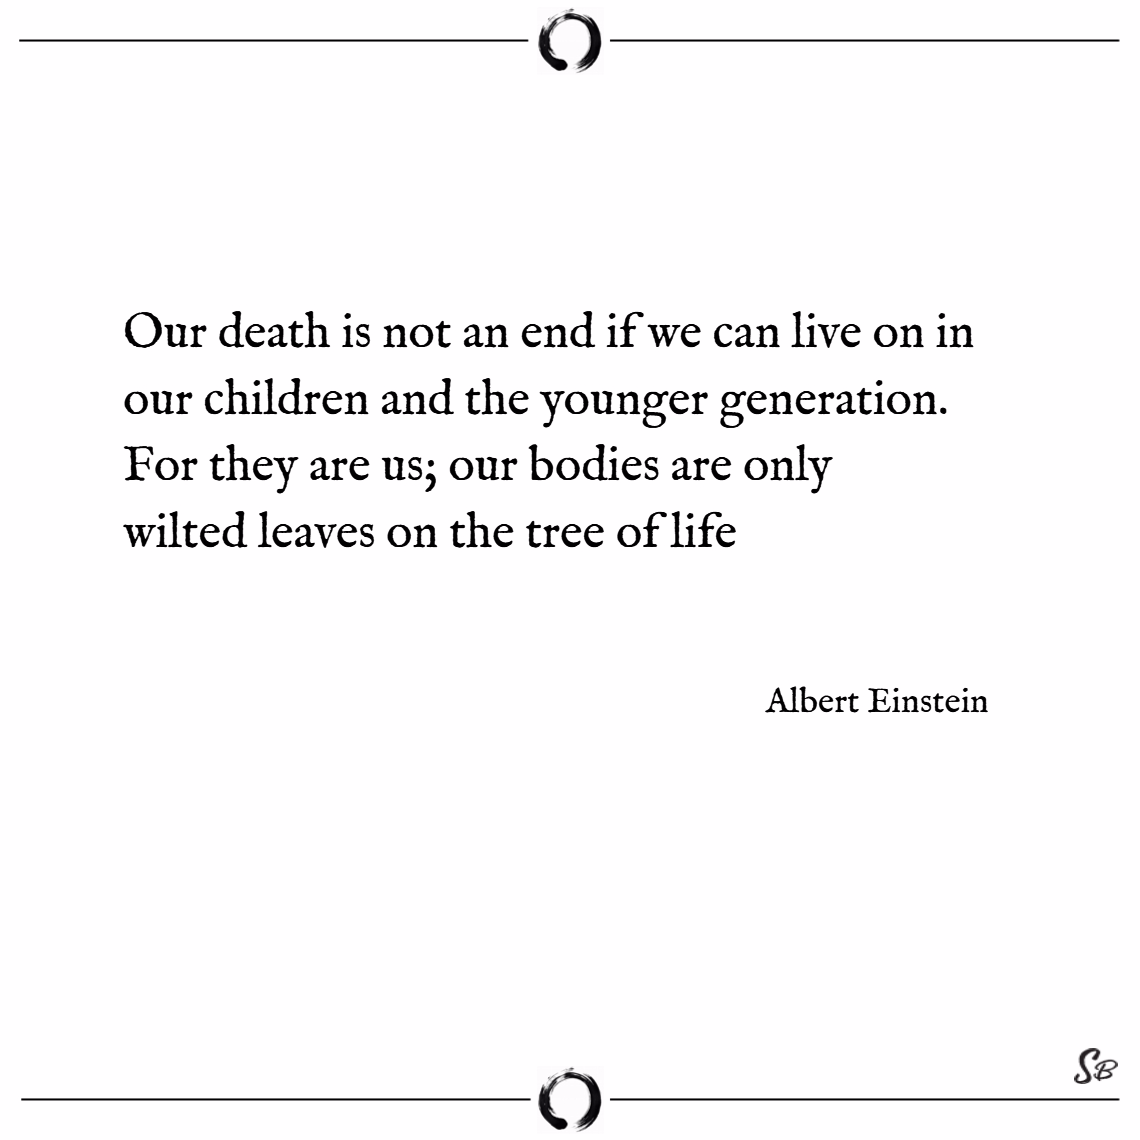 Our death is not an end if we can live on in our children and the younger generation. for they are us; our bodies are only wilted leaves on the tree of life. – albert einstein